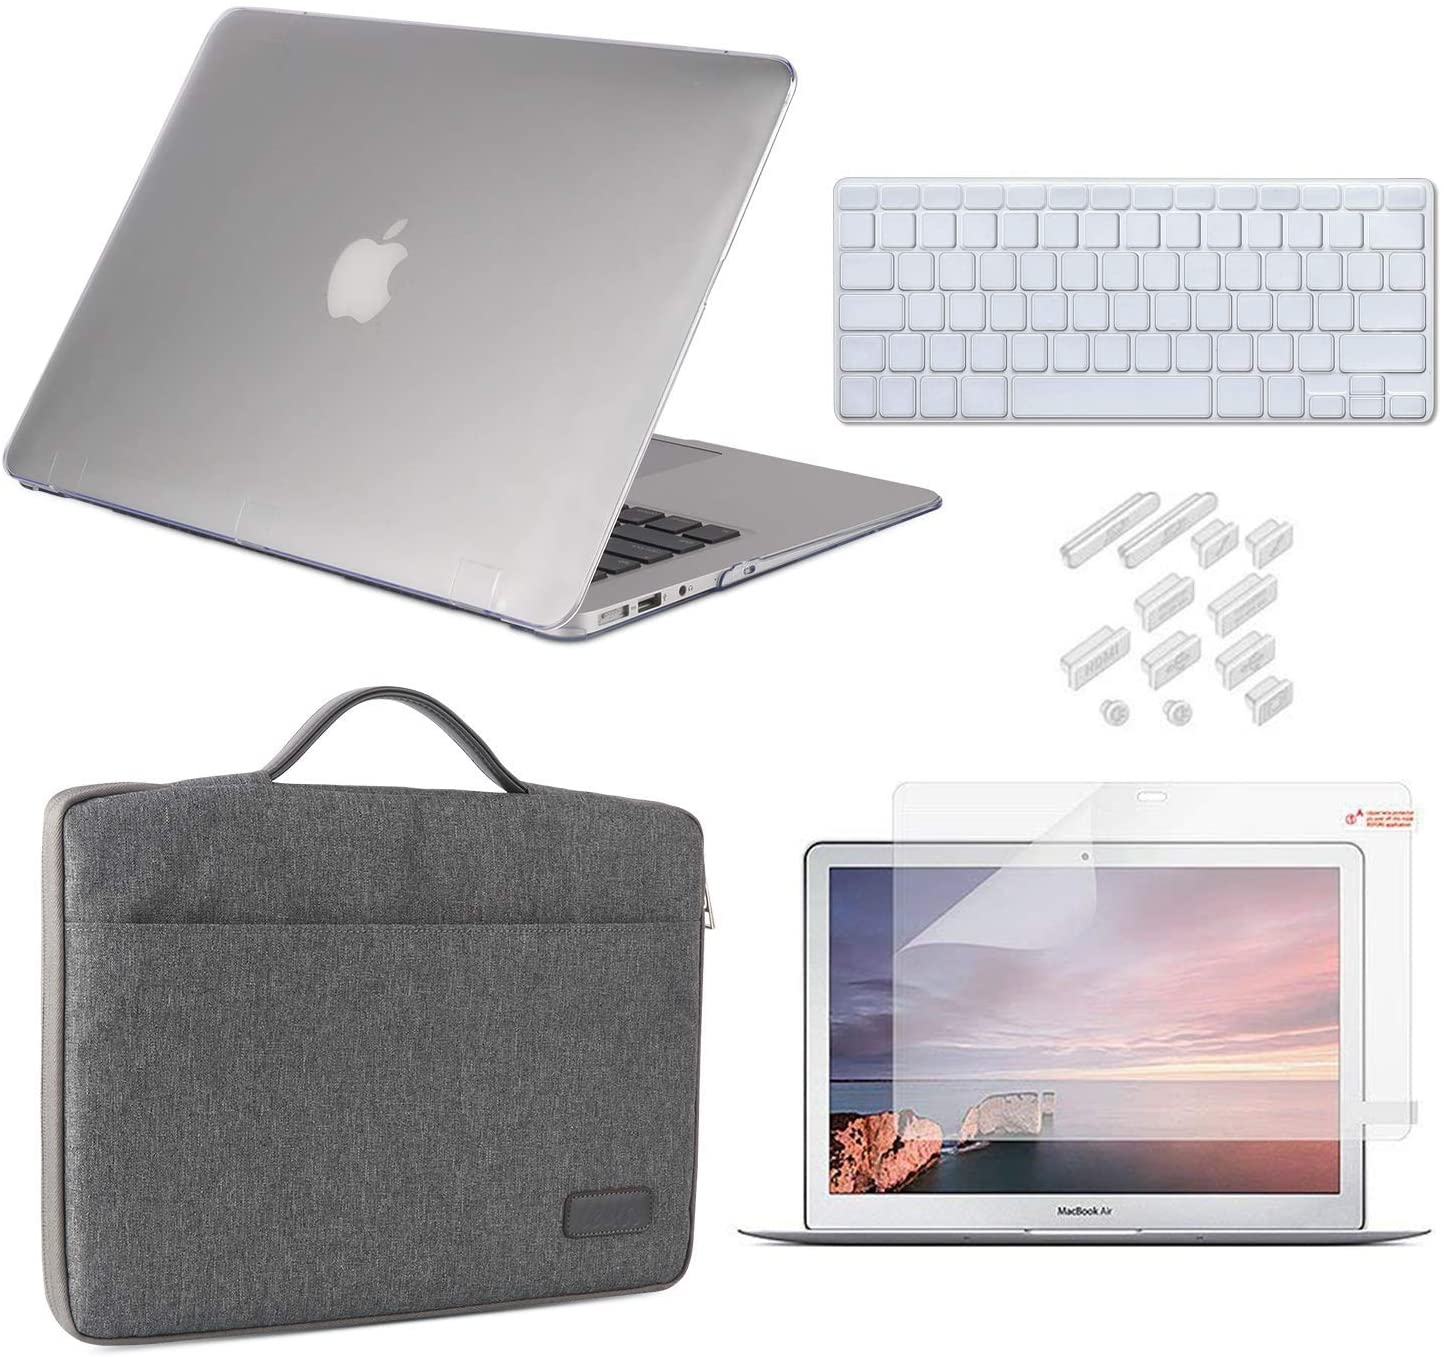 MacBook Air 13 Inch Case 2010-2017 Release Model A1369/A1466 Bundle 5 in 1, iCasso Hard Plastic Case, Sleeve, Screen Protector, Keyboard Cover & Dust Plug Compatible Old MacBook Air 13'' - Clear